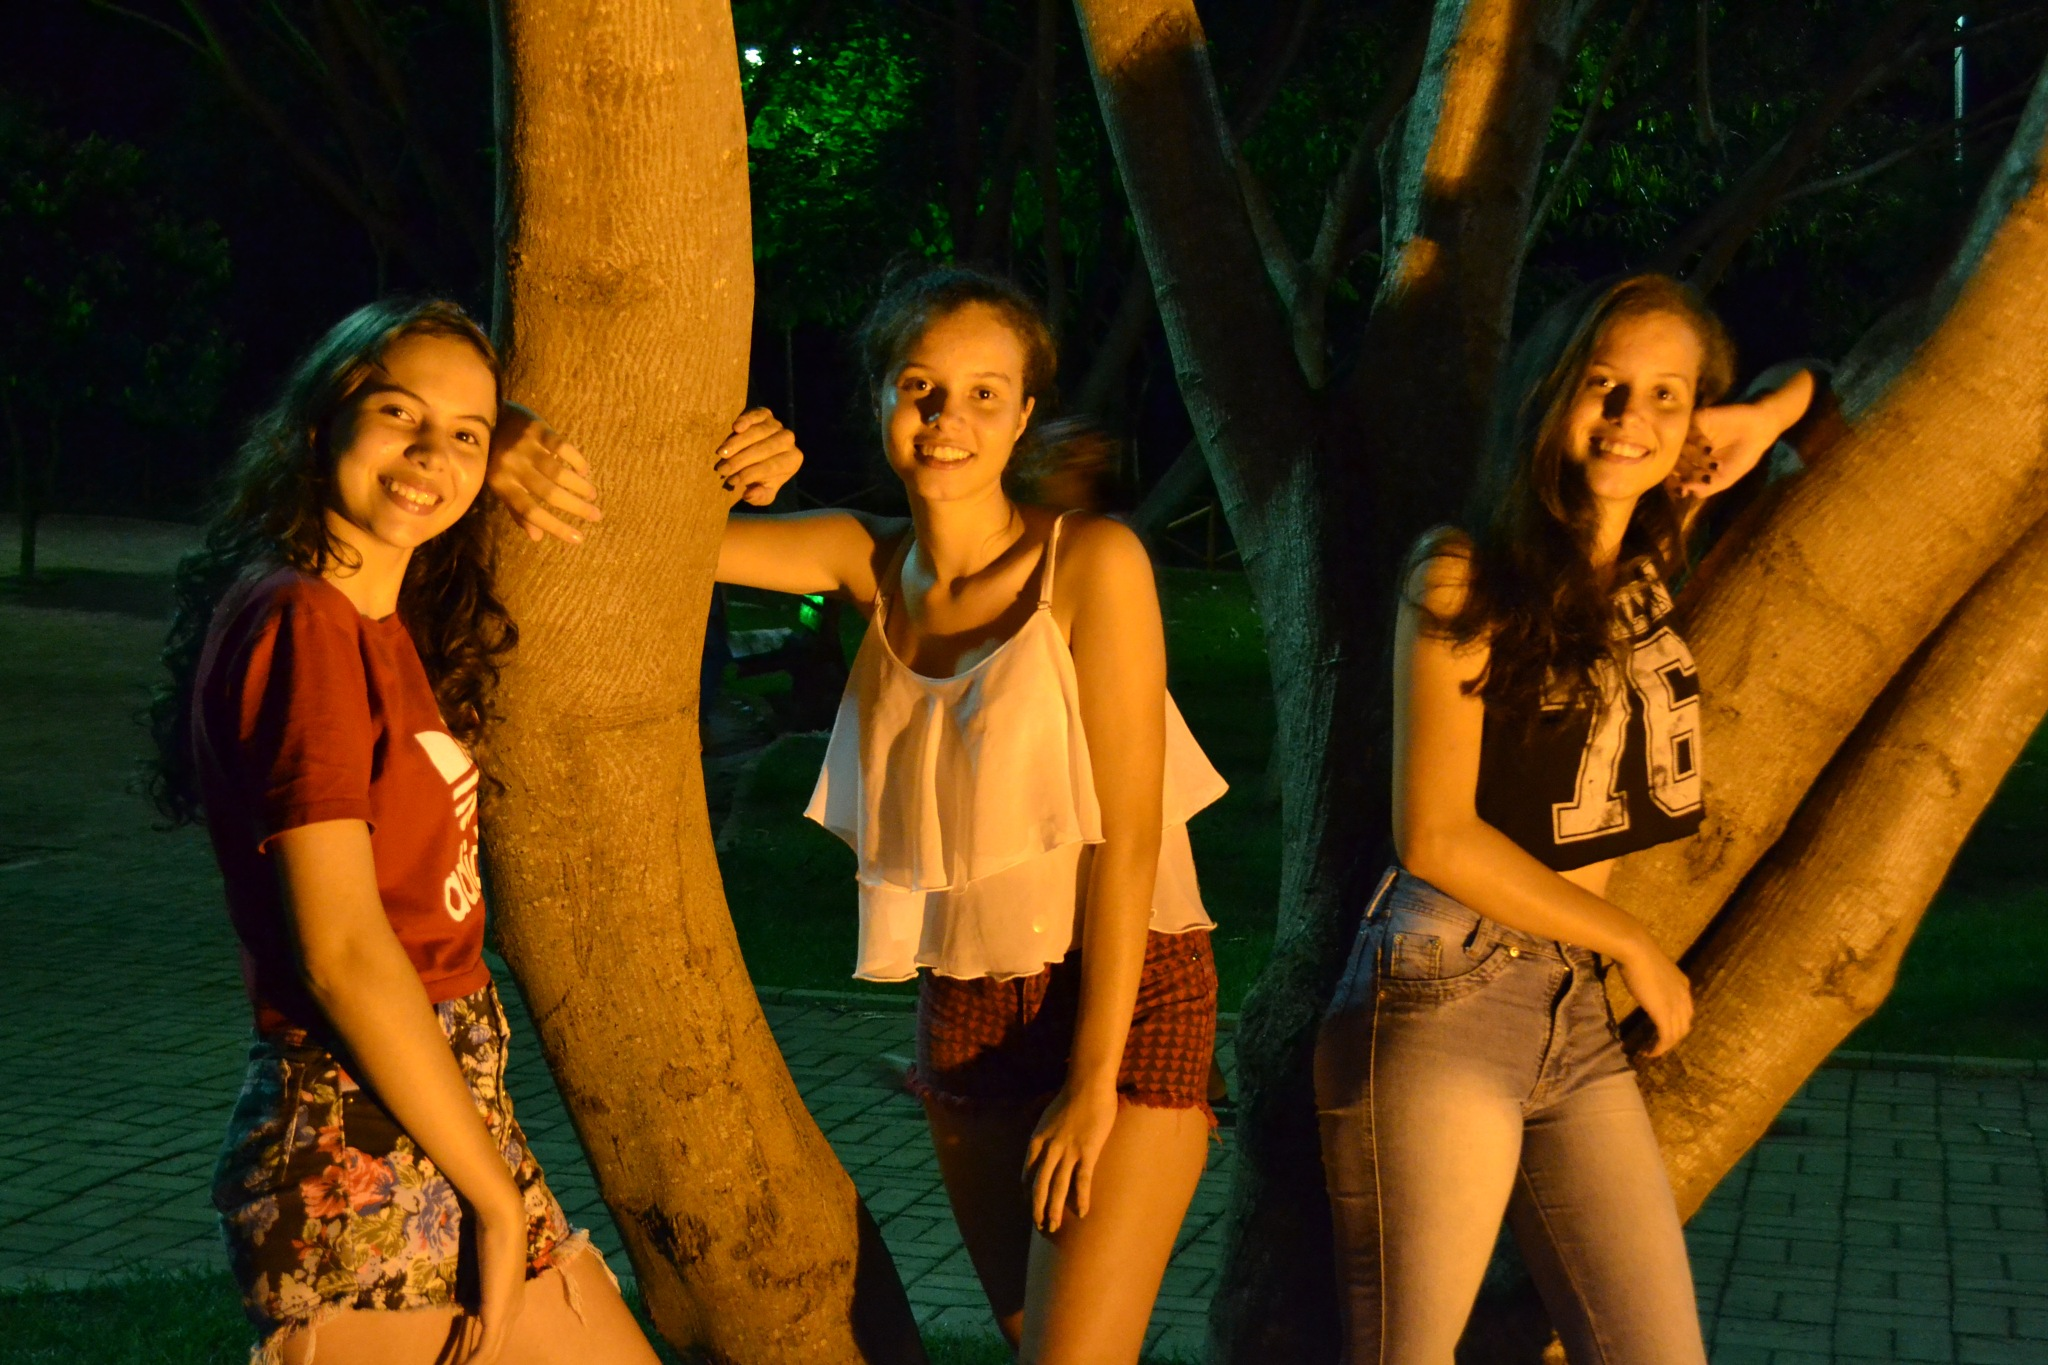 My 3 young models by Alexandro Lima